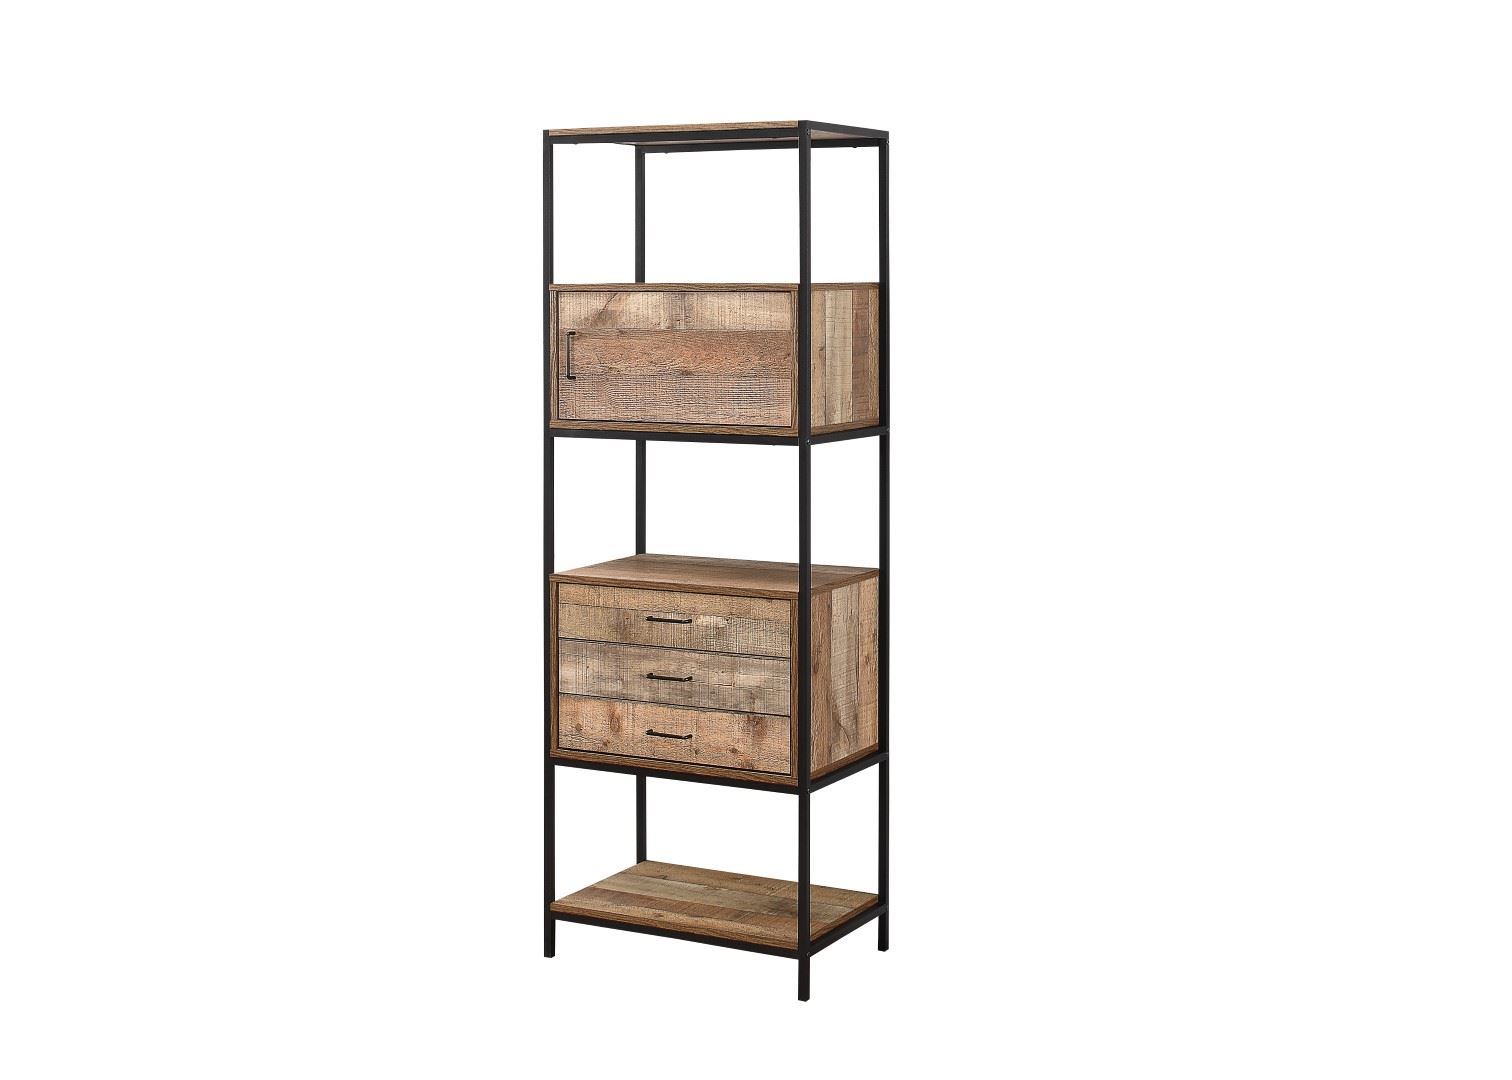 Details About Birlea Urban Industrial Chic 3 Drawer Shelving Unit Bookcase  Shelves Wood Metal